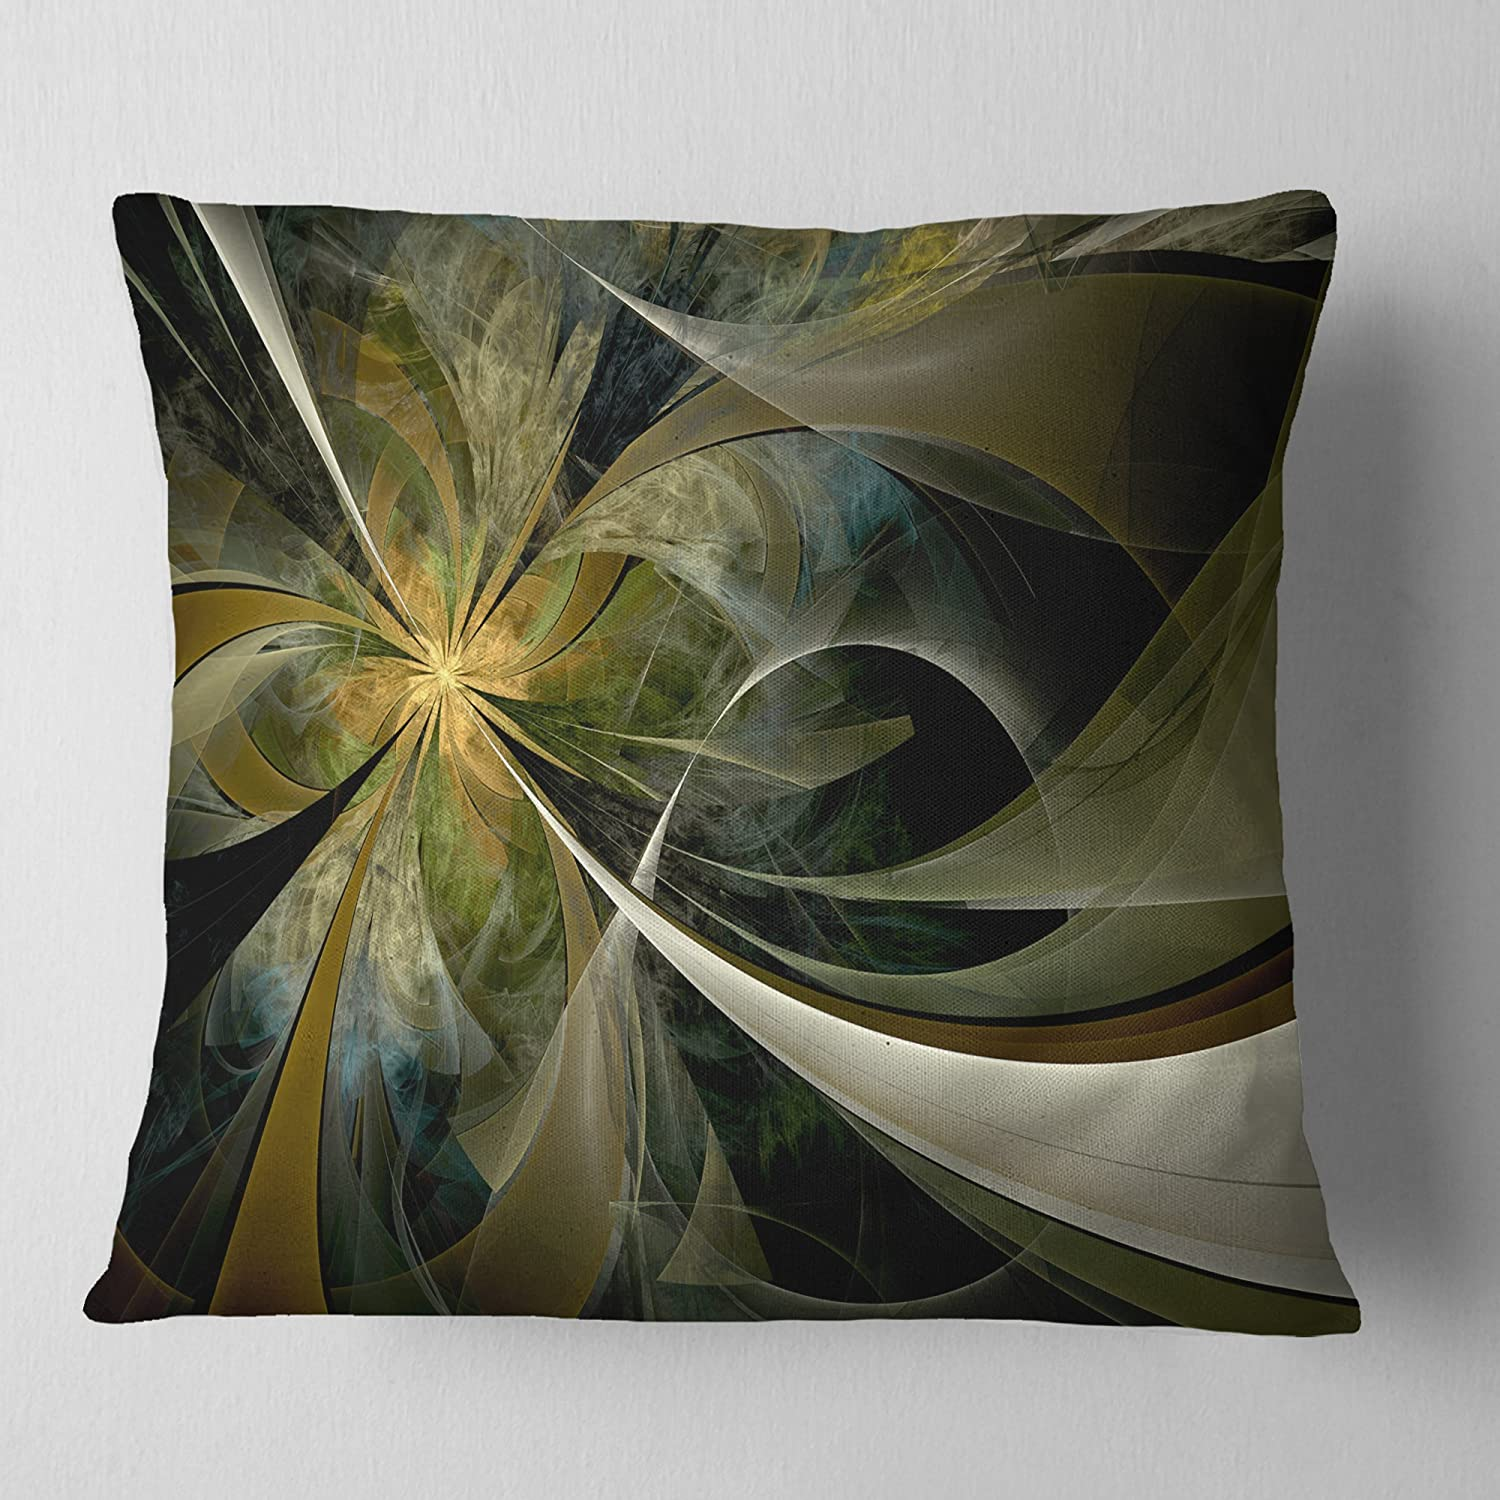 X 18 In Designart Cu11925 18 18 Gold And Silver Large Fractal Flower Floral Cushion Cover For Living Room Insert Printed On Both Side In Sofa Throw Pillow 18 In Throw Pillow Covers Home